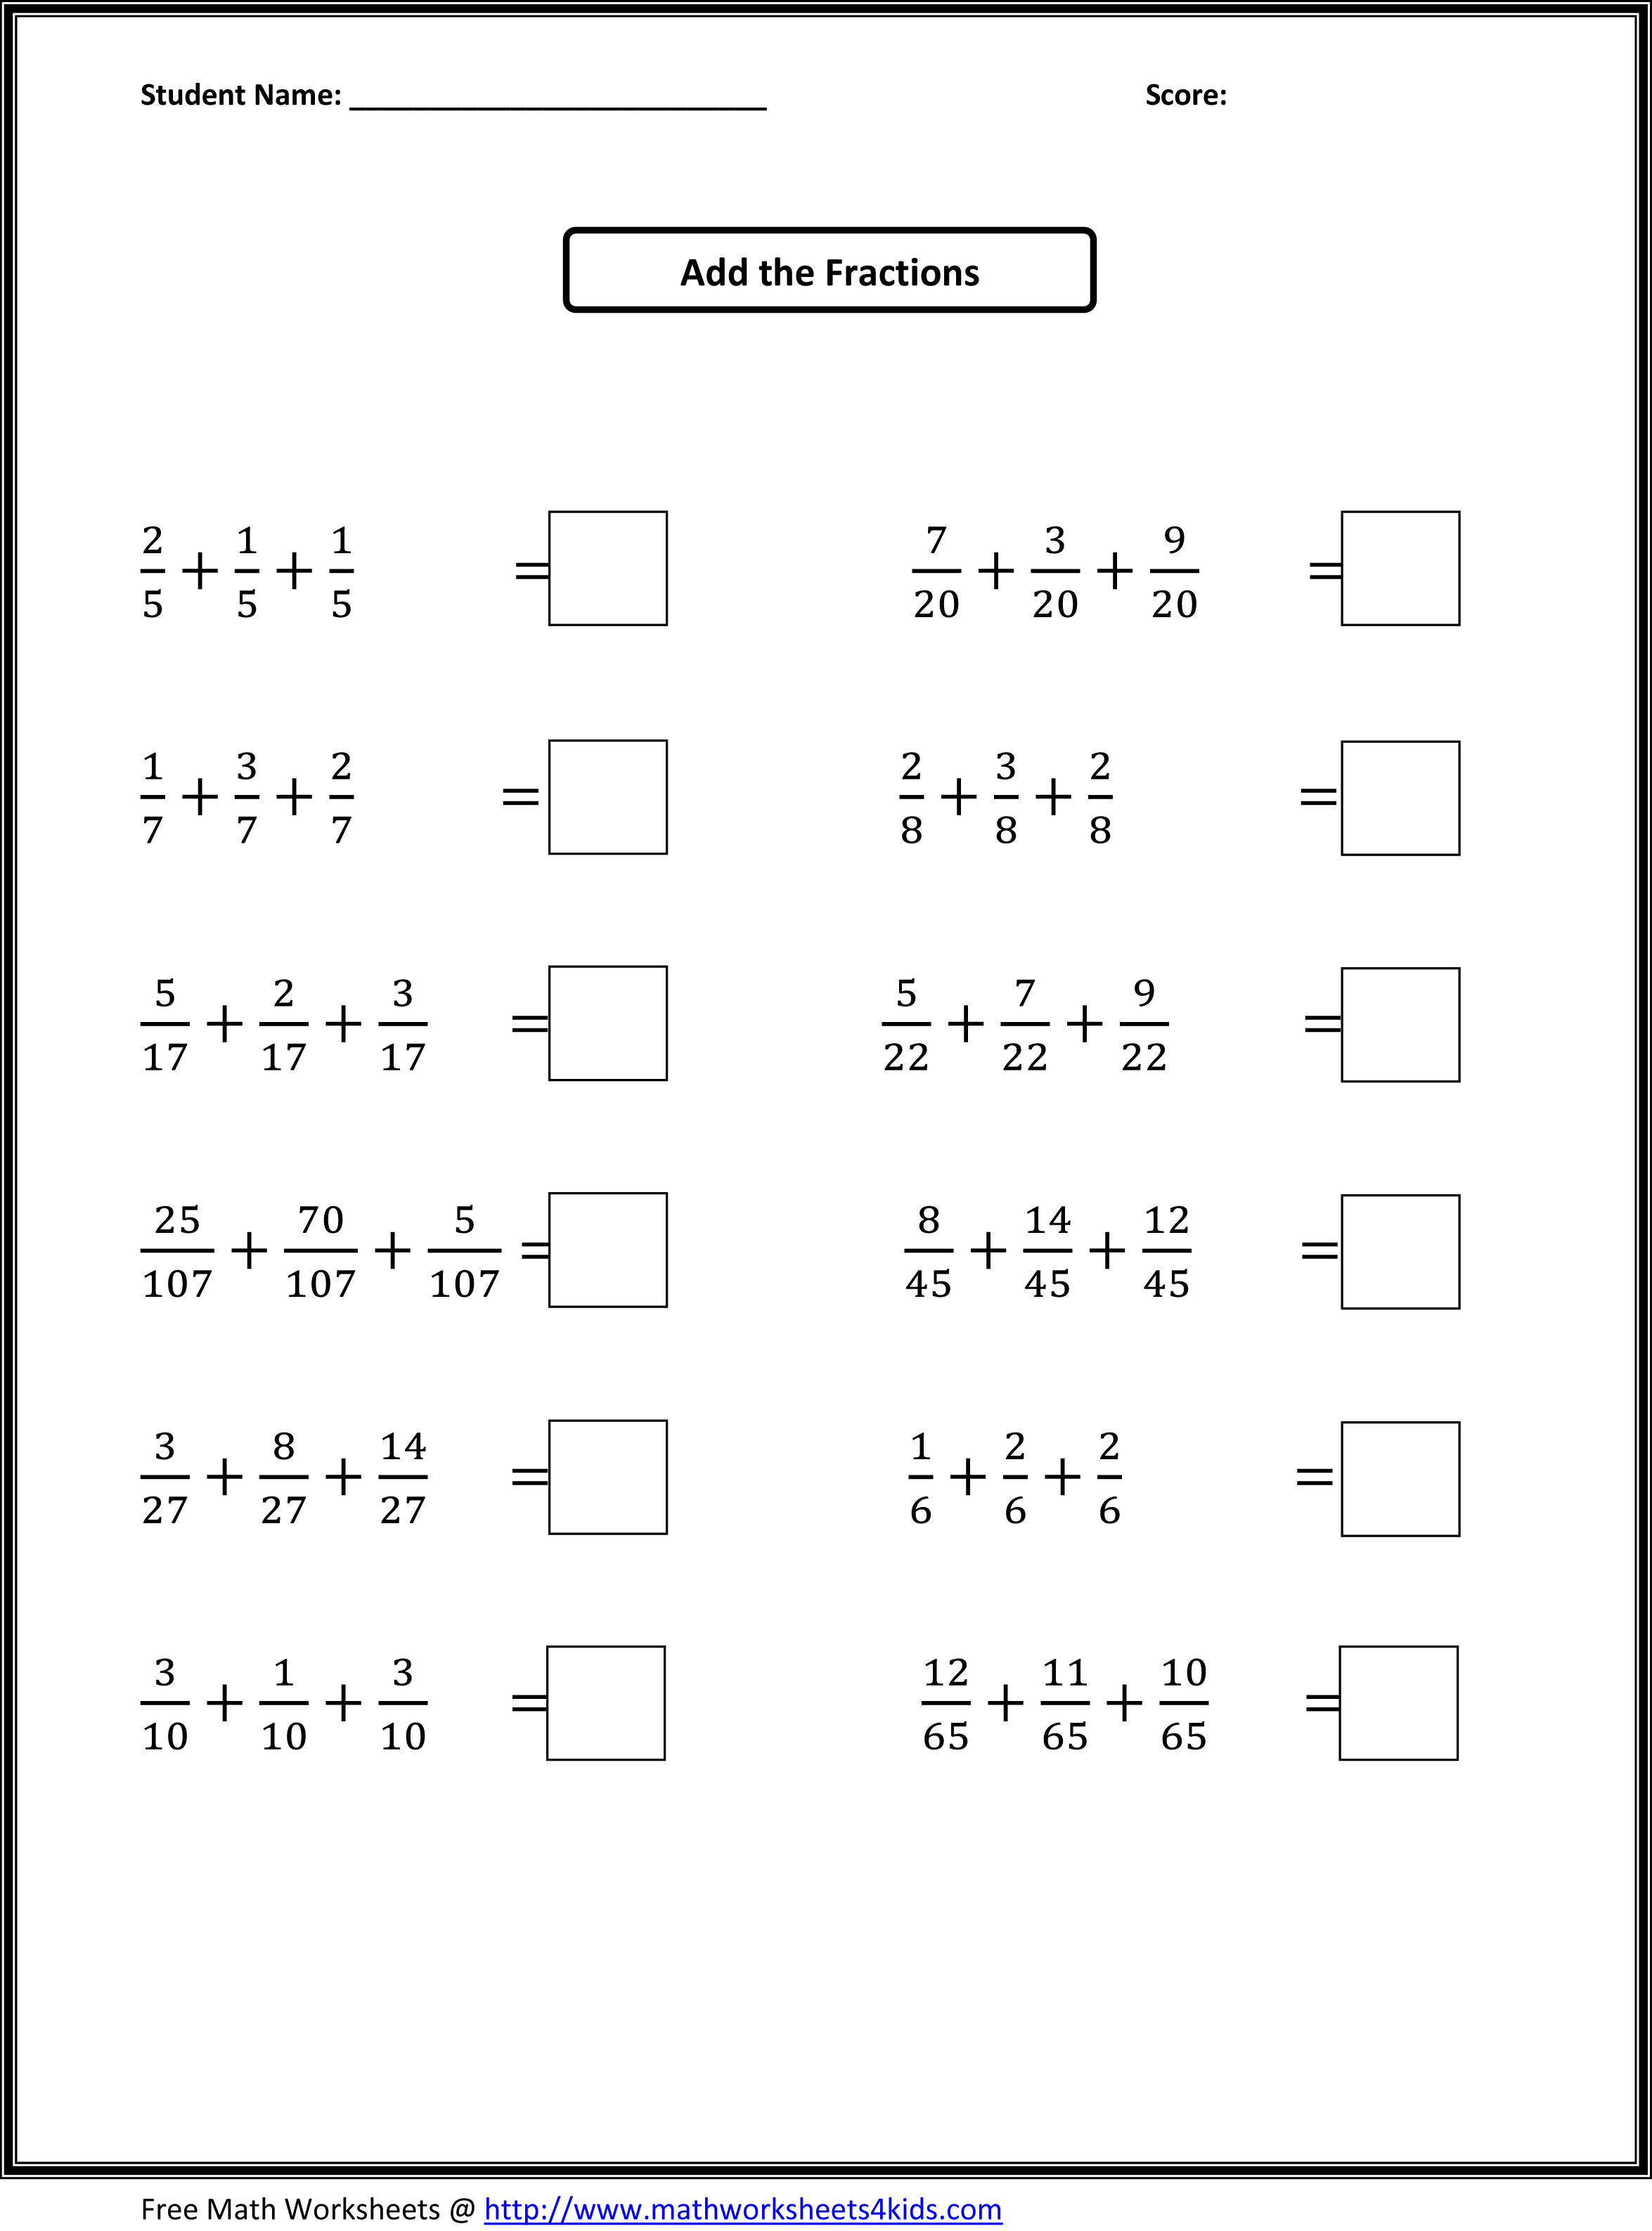 math worksheet : math printable worksheets 4th grade  khayav : Math Problems For 4th Graders Worksheets